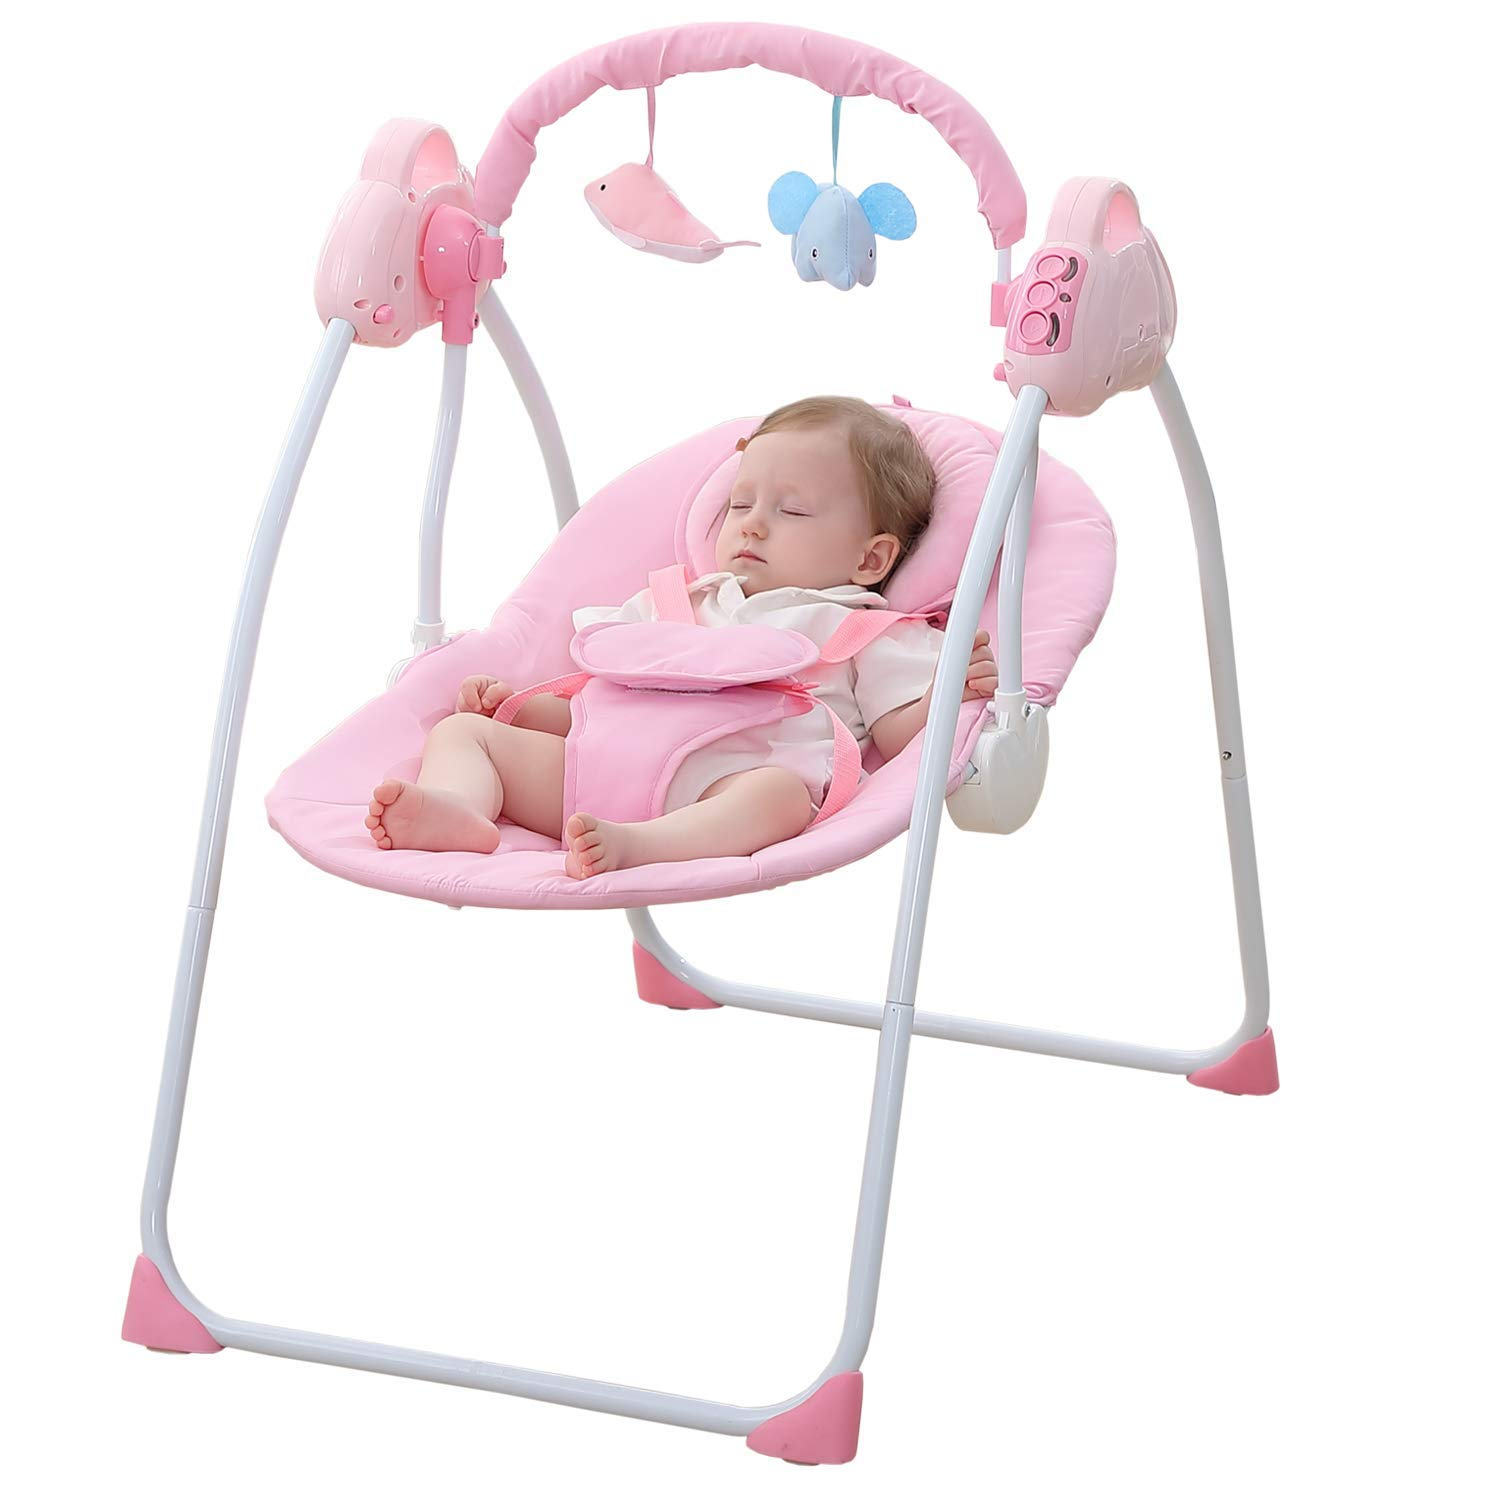 WBPINE Baby Swing Cradle, Automatic Portable Baby Rocker Swing Chair with Music Pink Without Remote Control